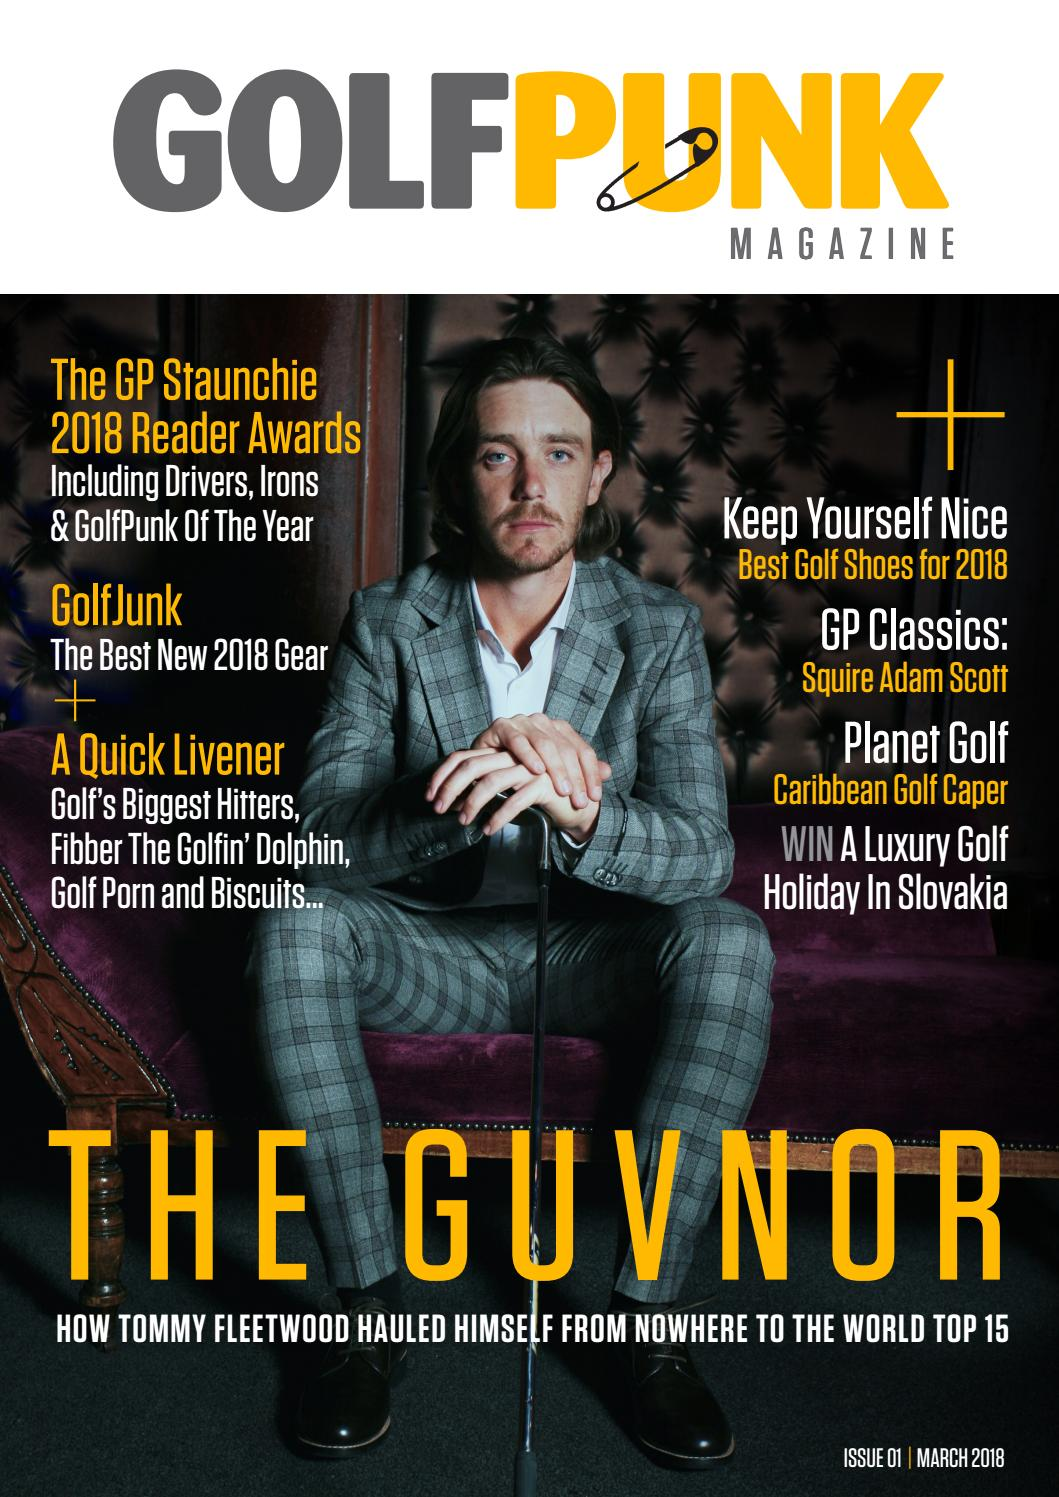 fa4ad0a4c97e GolfPunk Digital Magazine Issue 1 by GolfPunk magazine - issuu